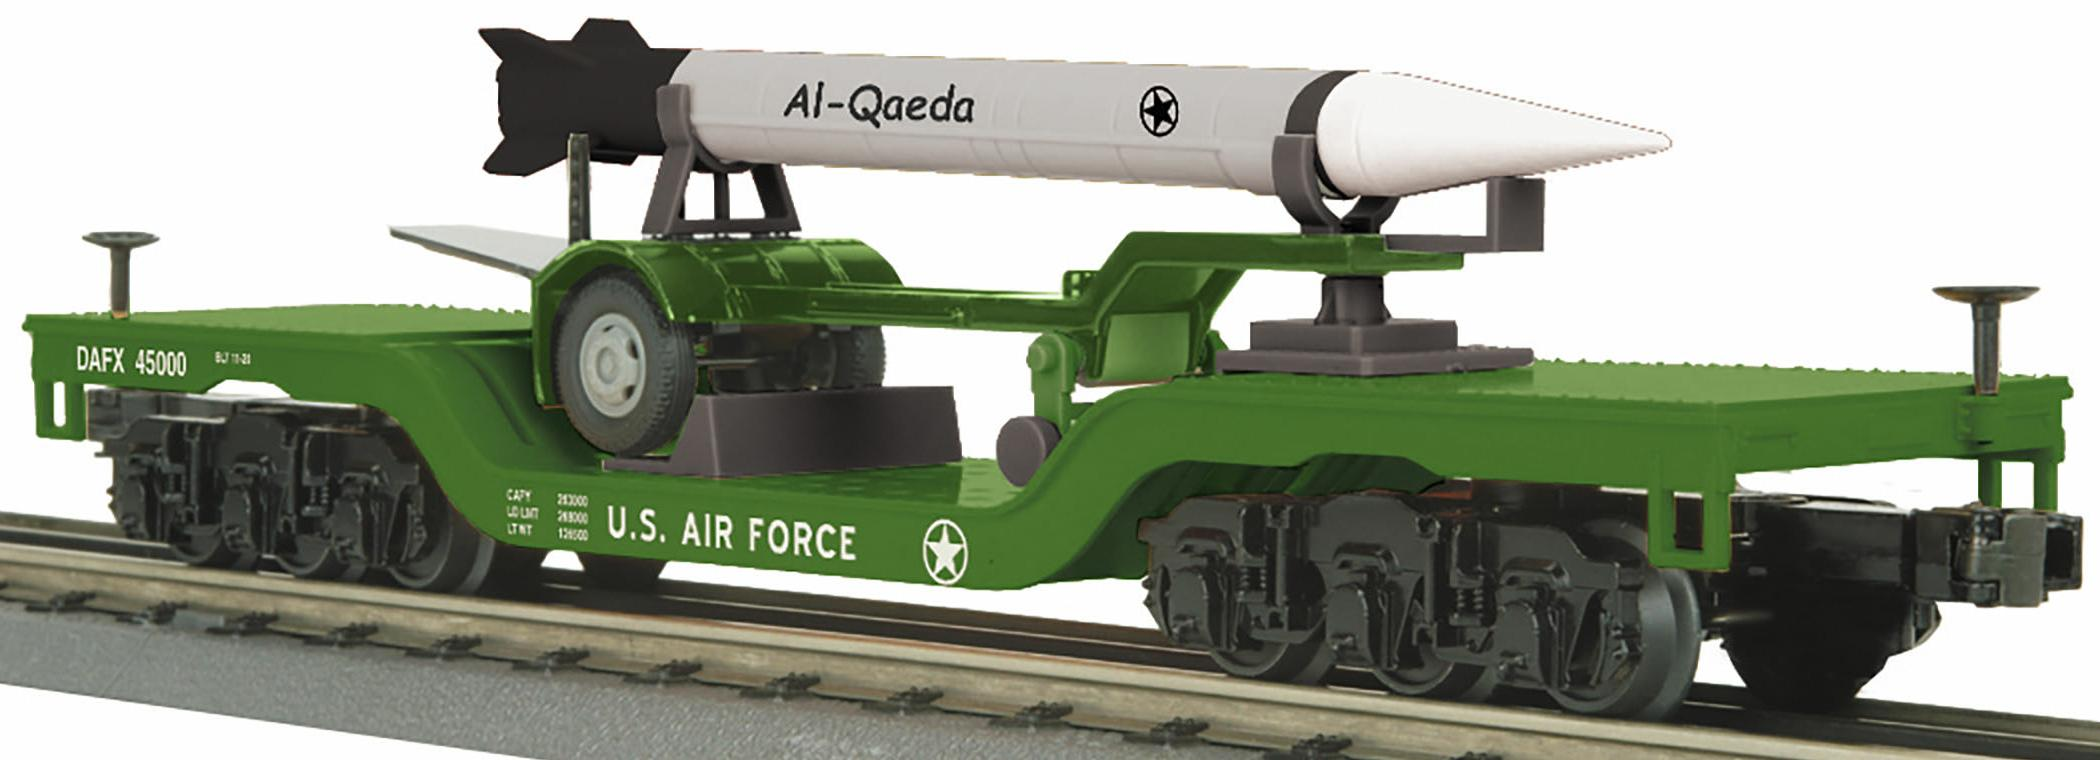 Dep. Center Flat Car w/Rocket Load - U.S. Air Force (Al-Qaeda) image